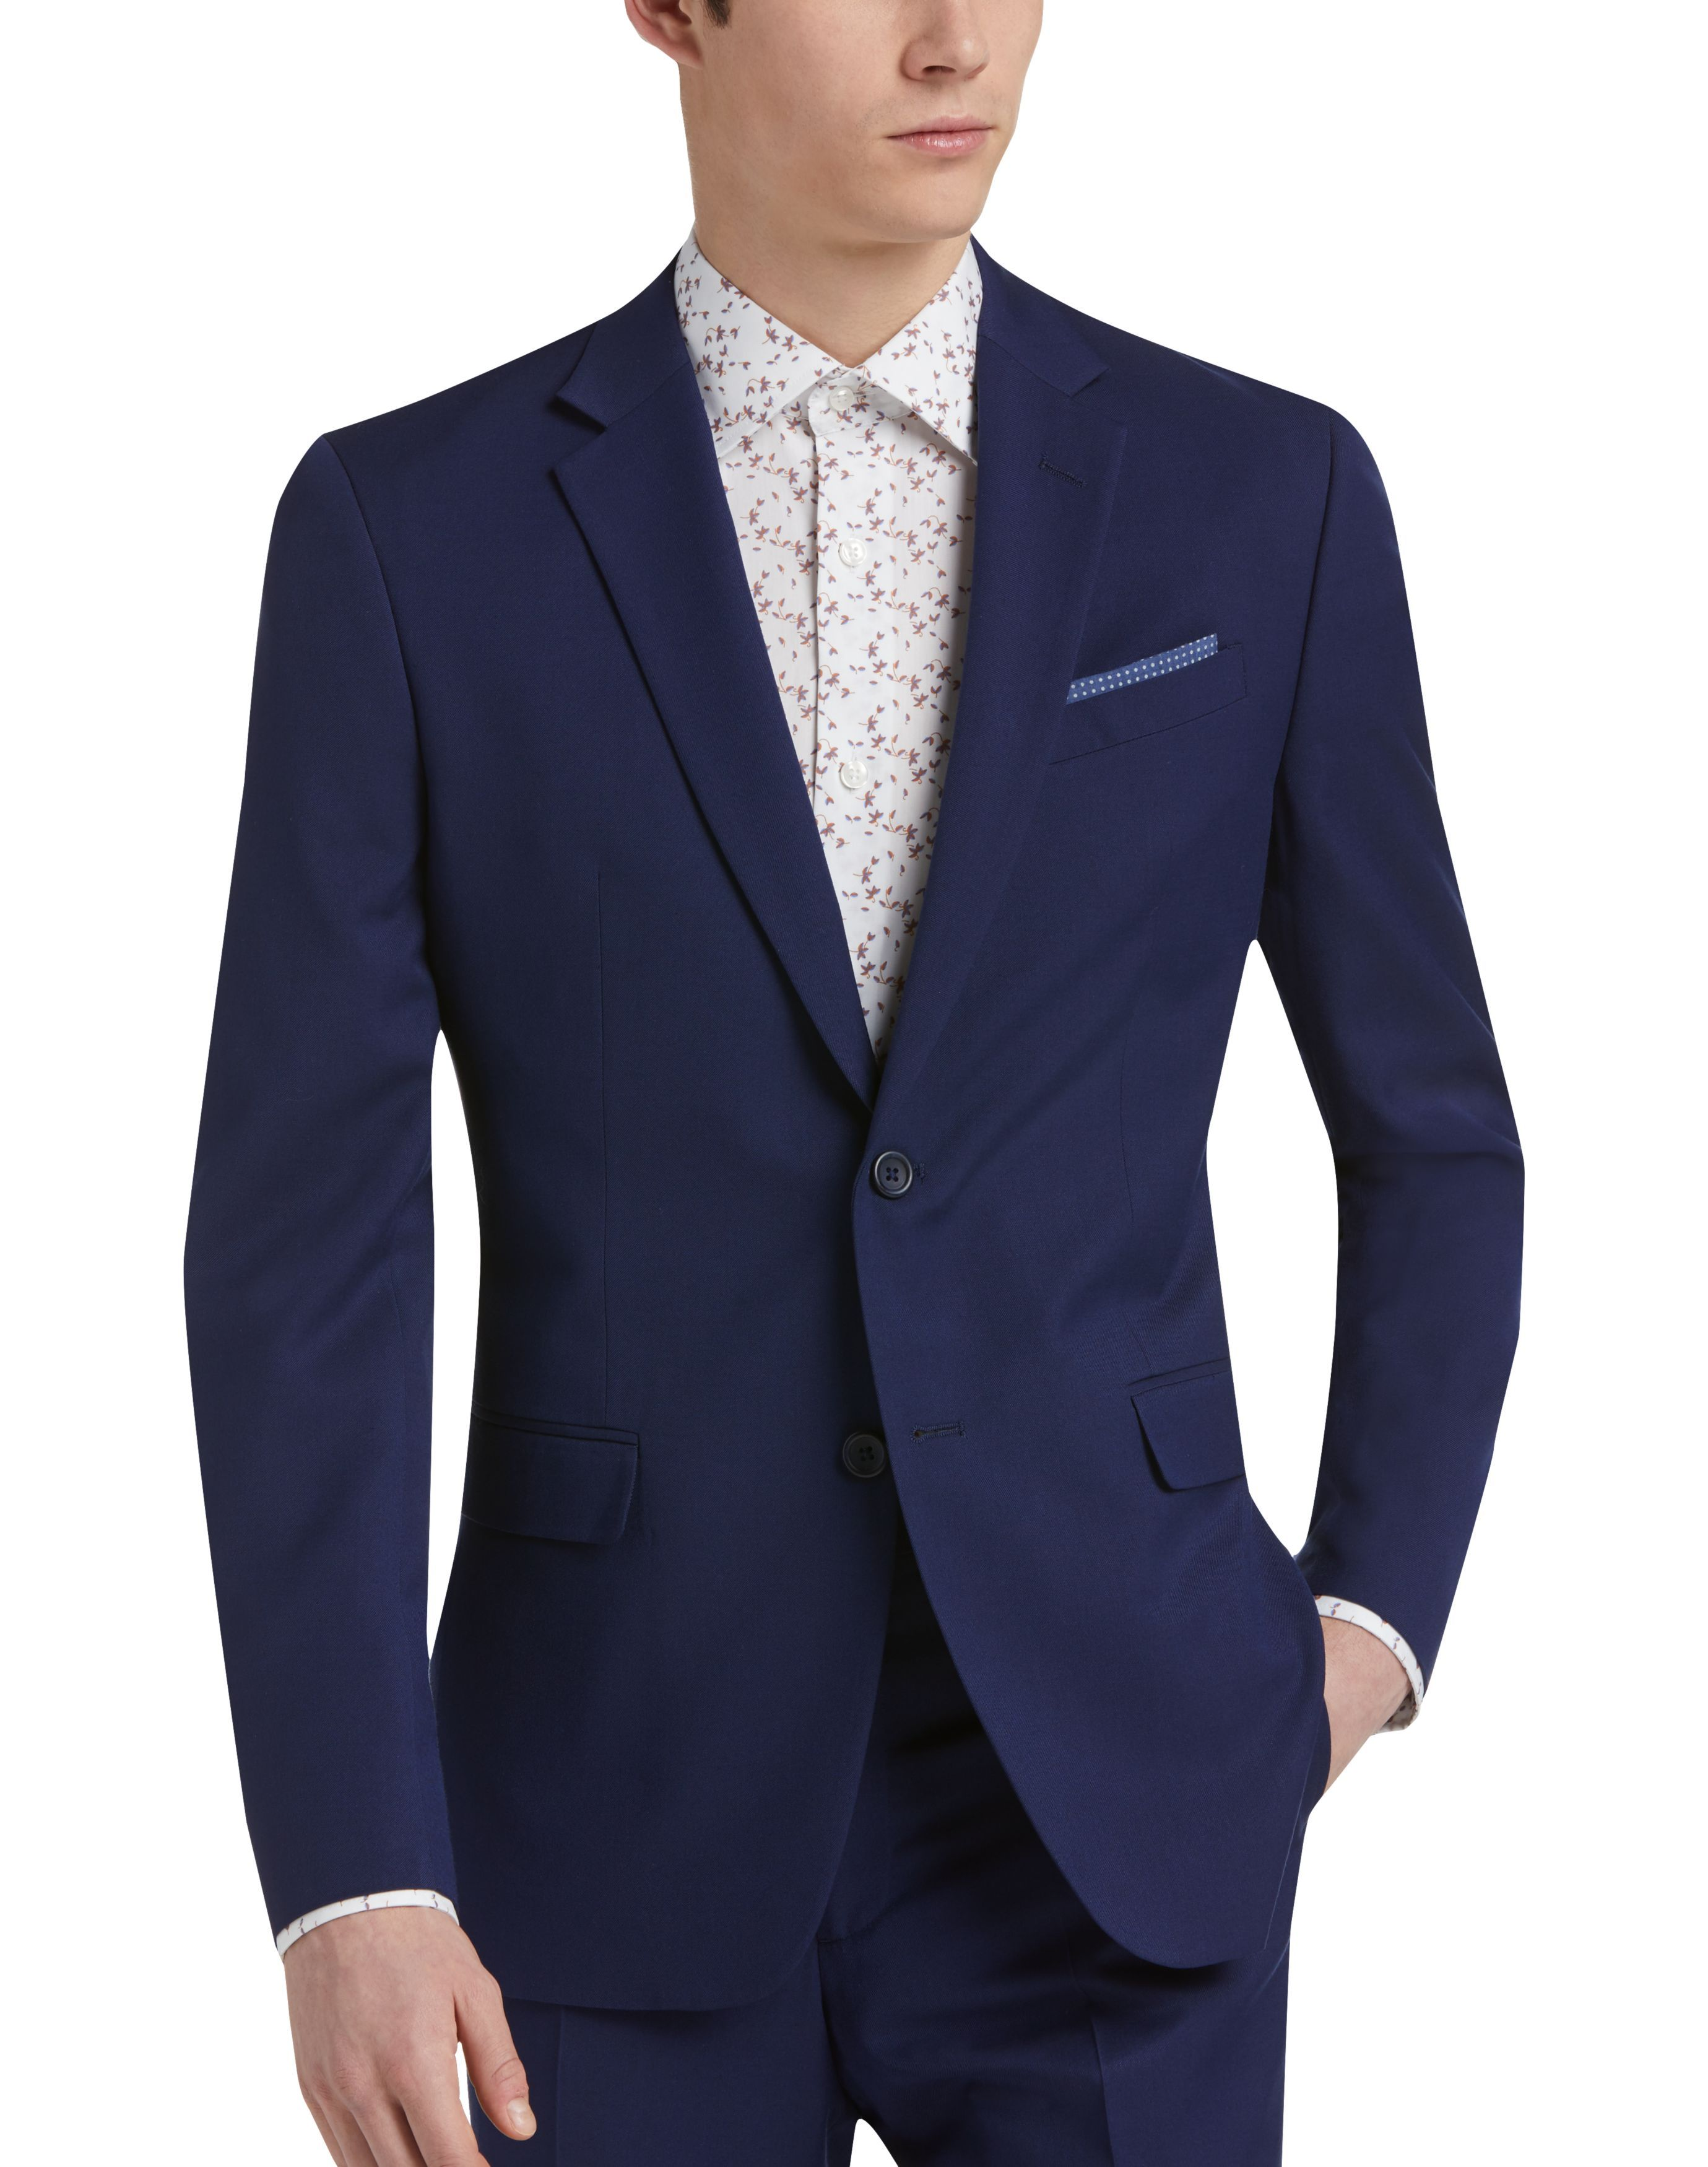 Egara Orange Blue Extreme Slim Fit Suit Men S Suits Slim Fit